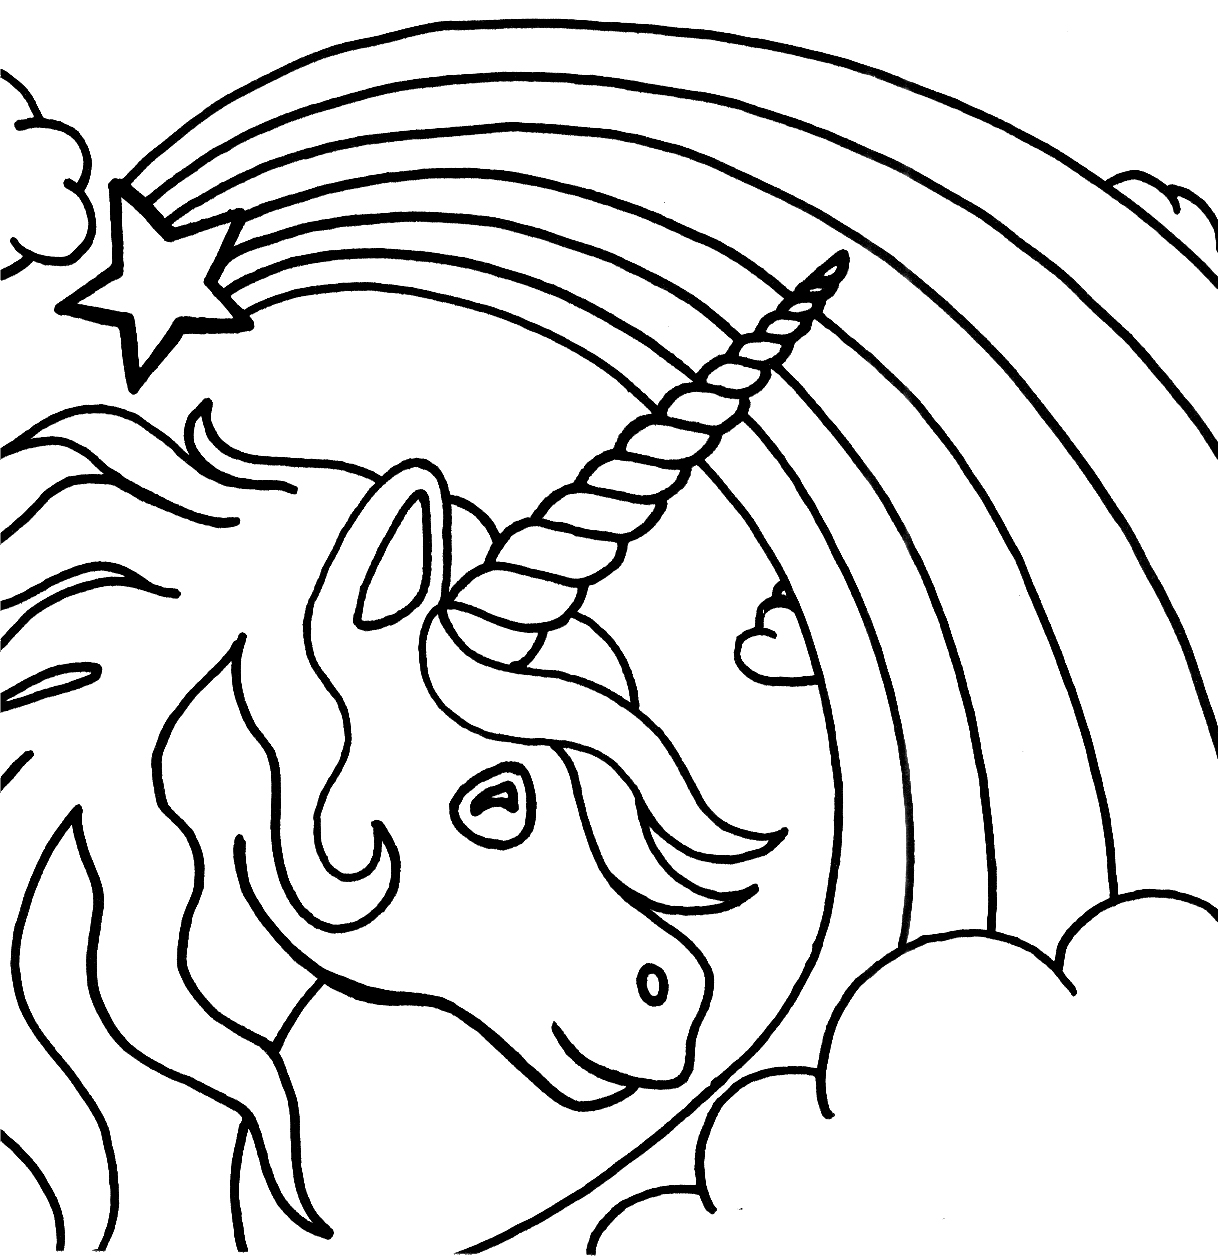 unicorn coloring pages for kids - Coloring Pics For Kids